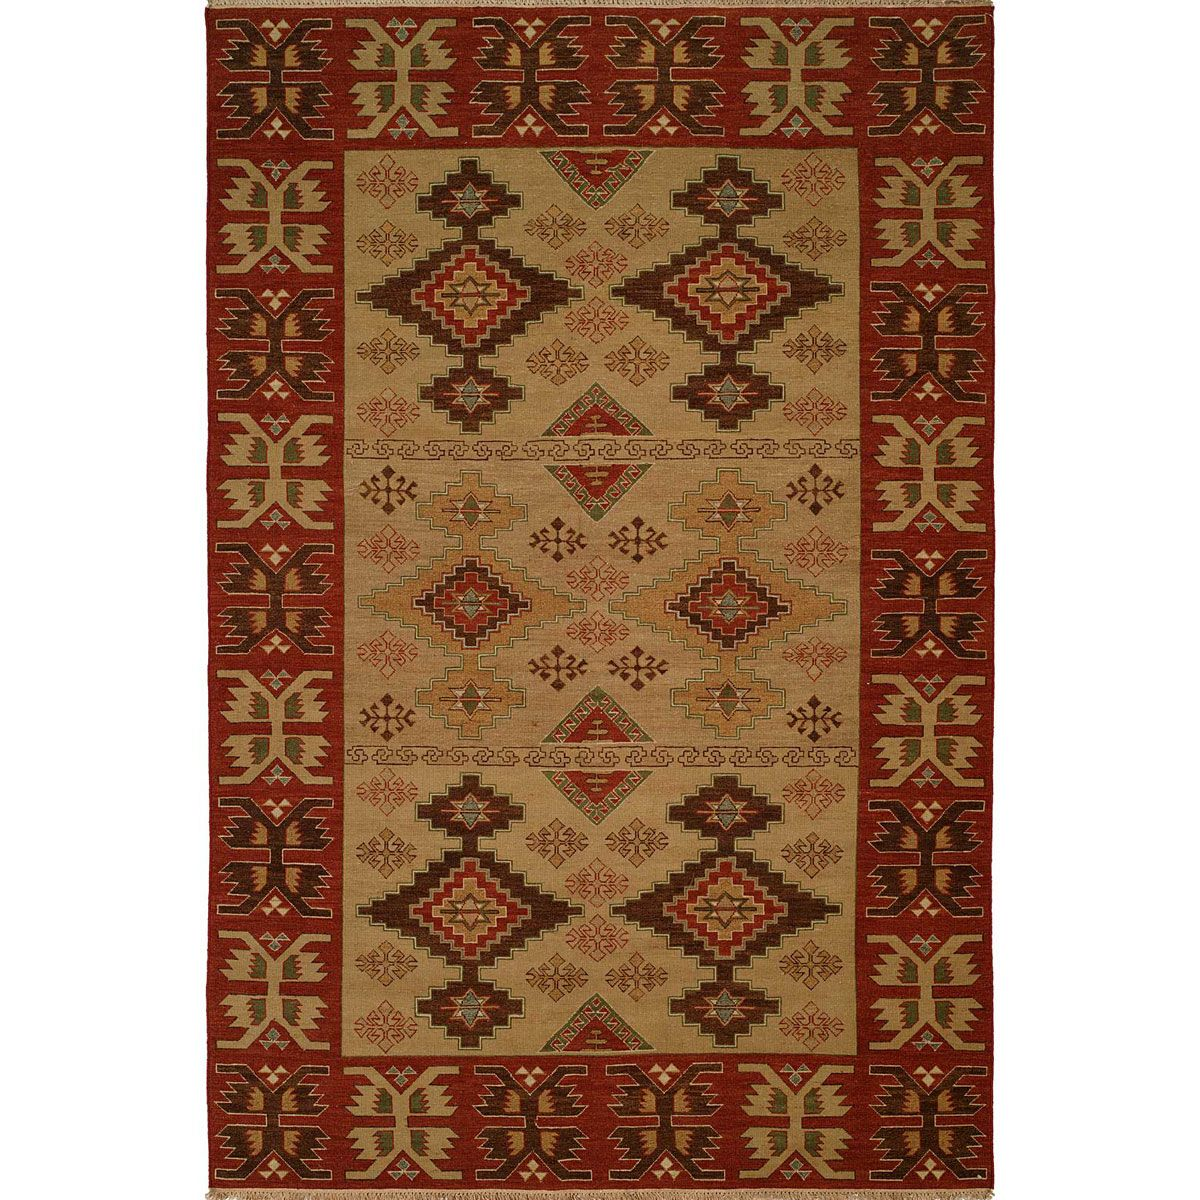 Fire Diamonds Rug - 3 x 10